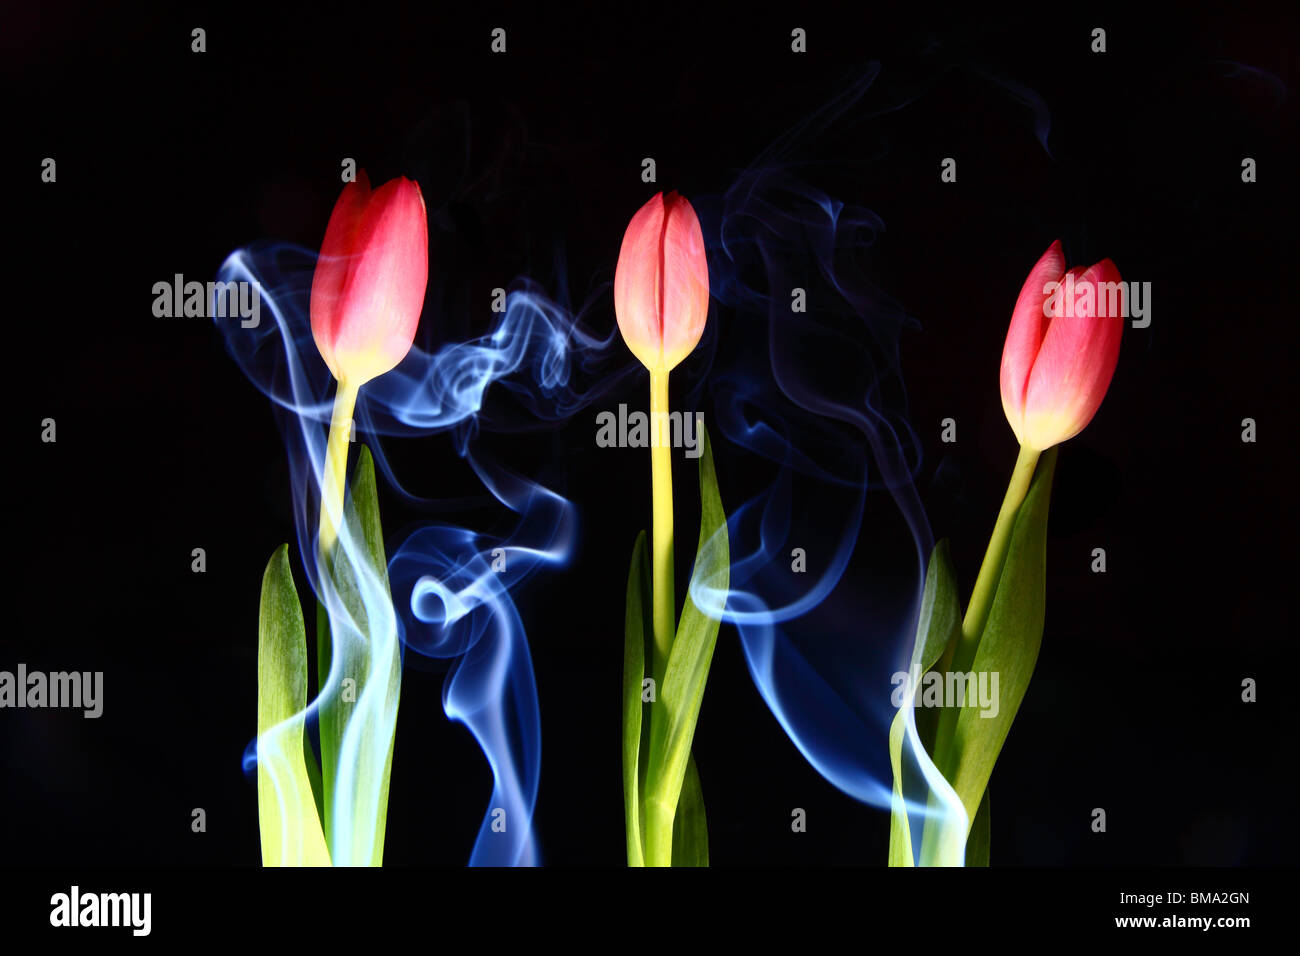 A Photograph of incense smoke rising and curling around three pink tulips. - Stock Image